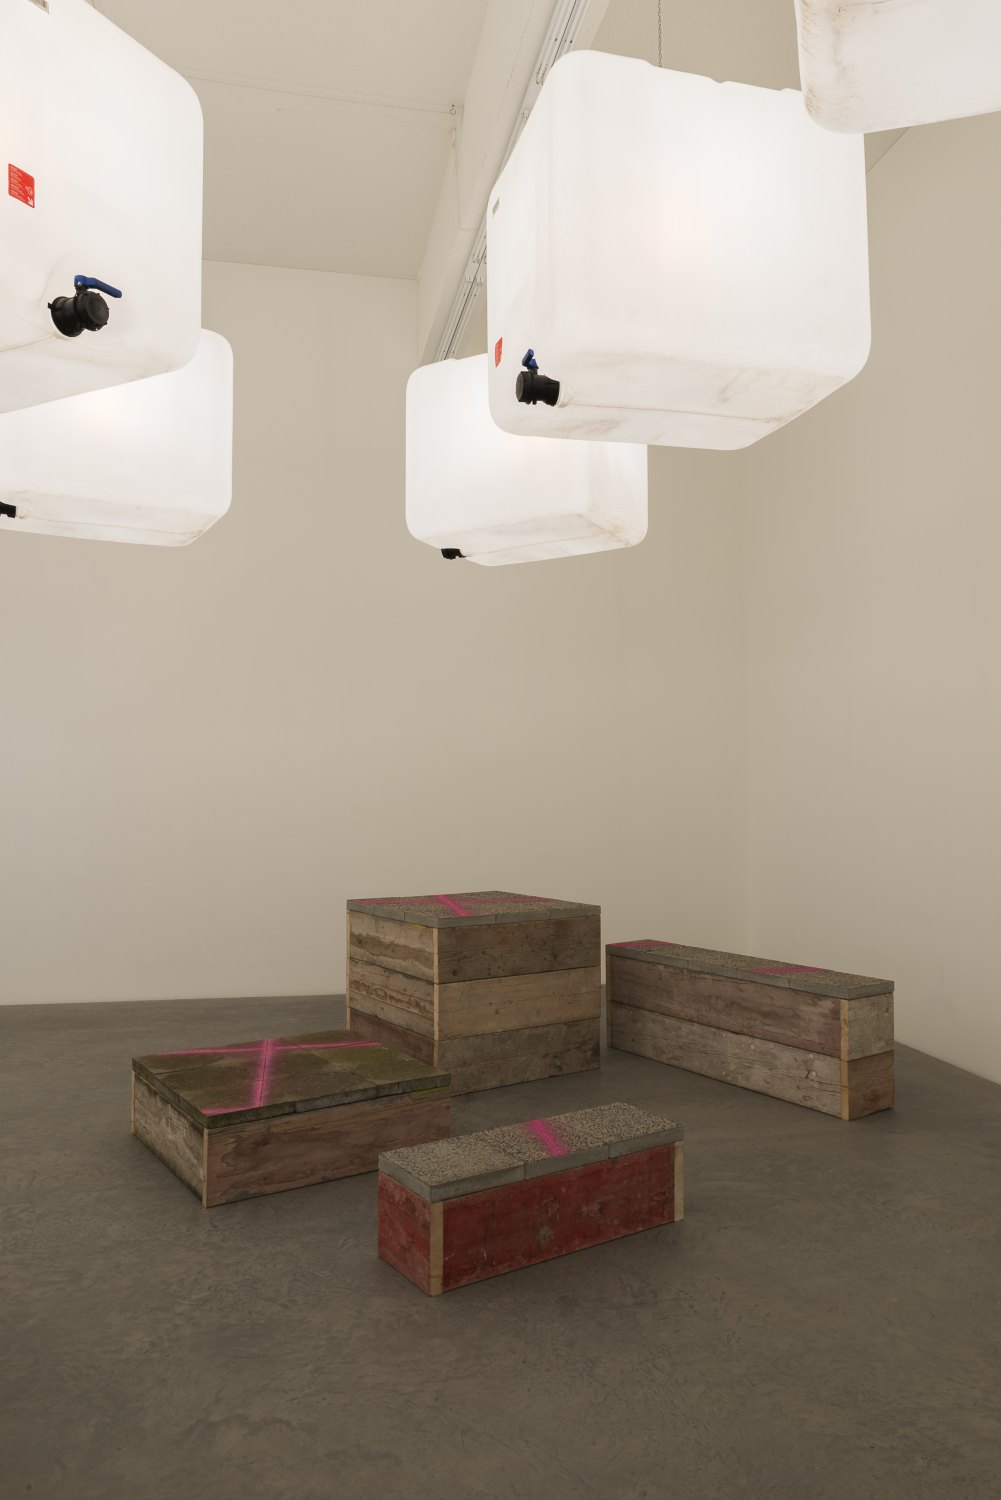 Klara Lidén Untitled, 2015 Wood, concrete, lamps, plastic, dimensions variable